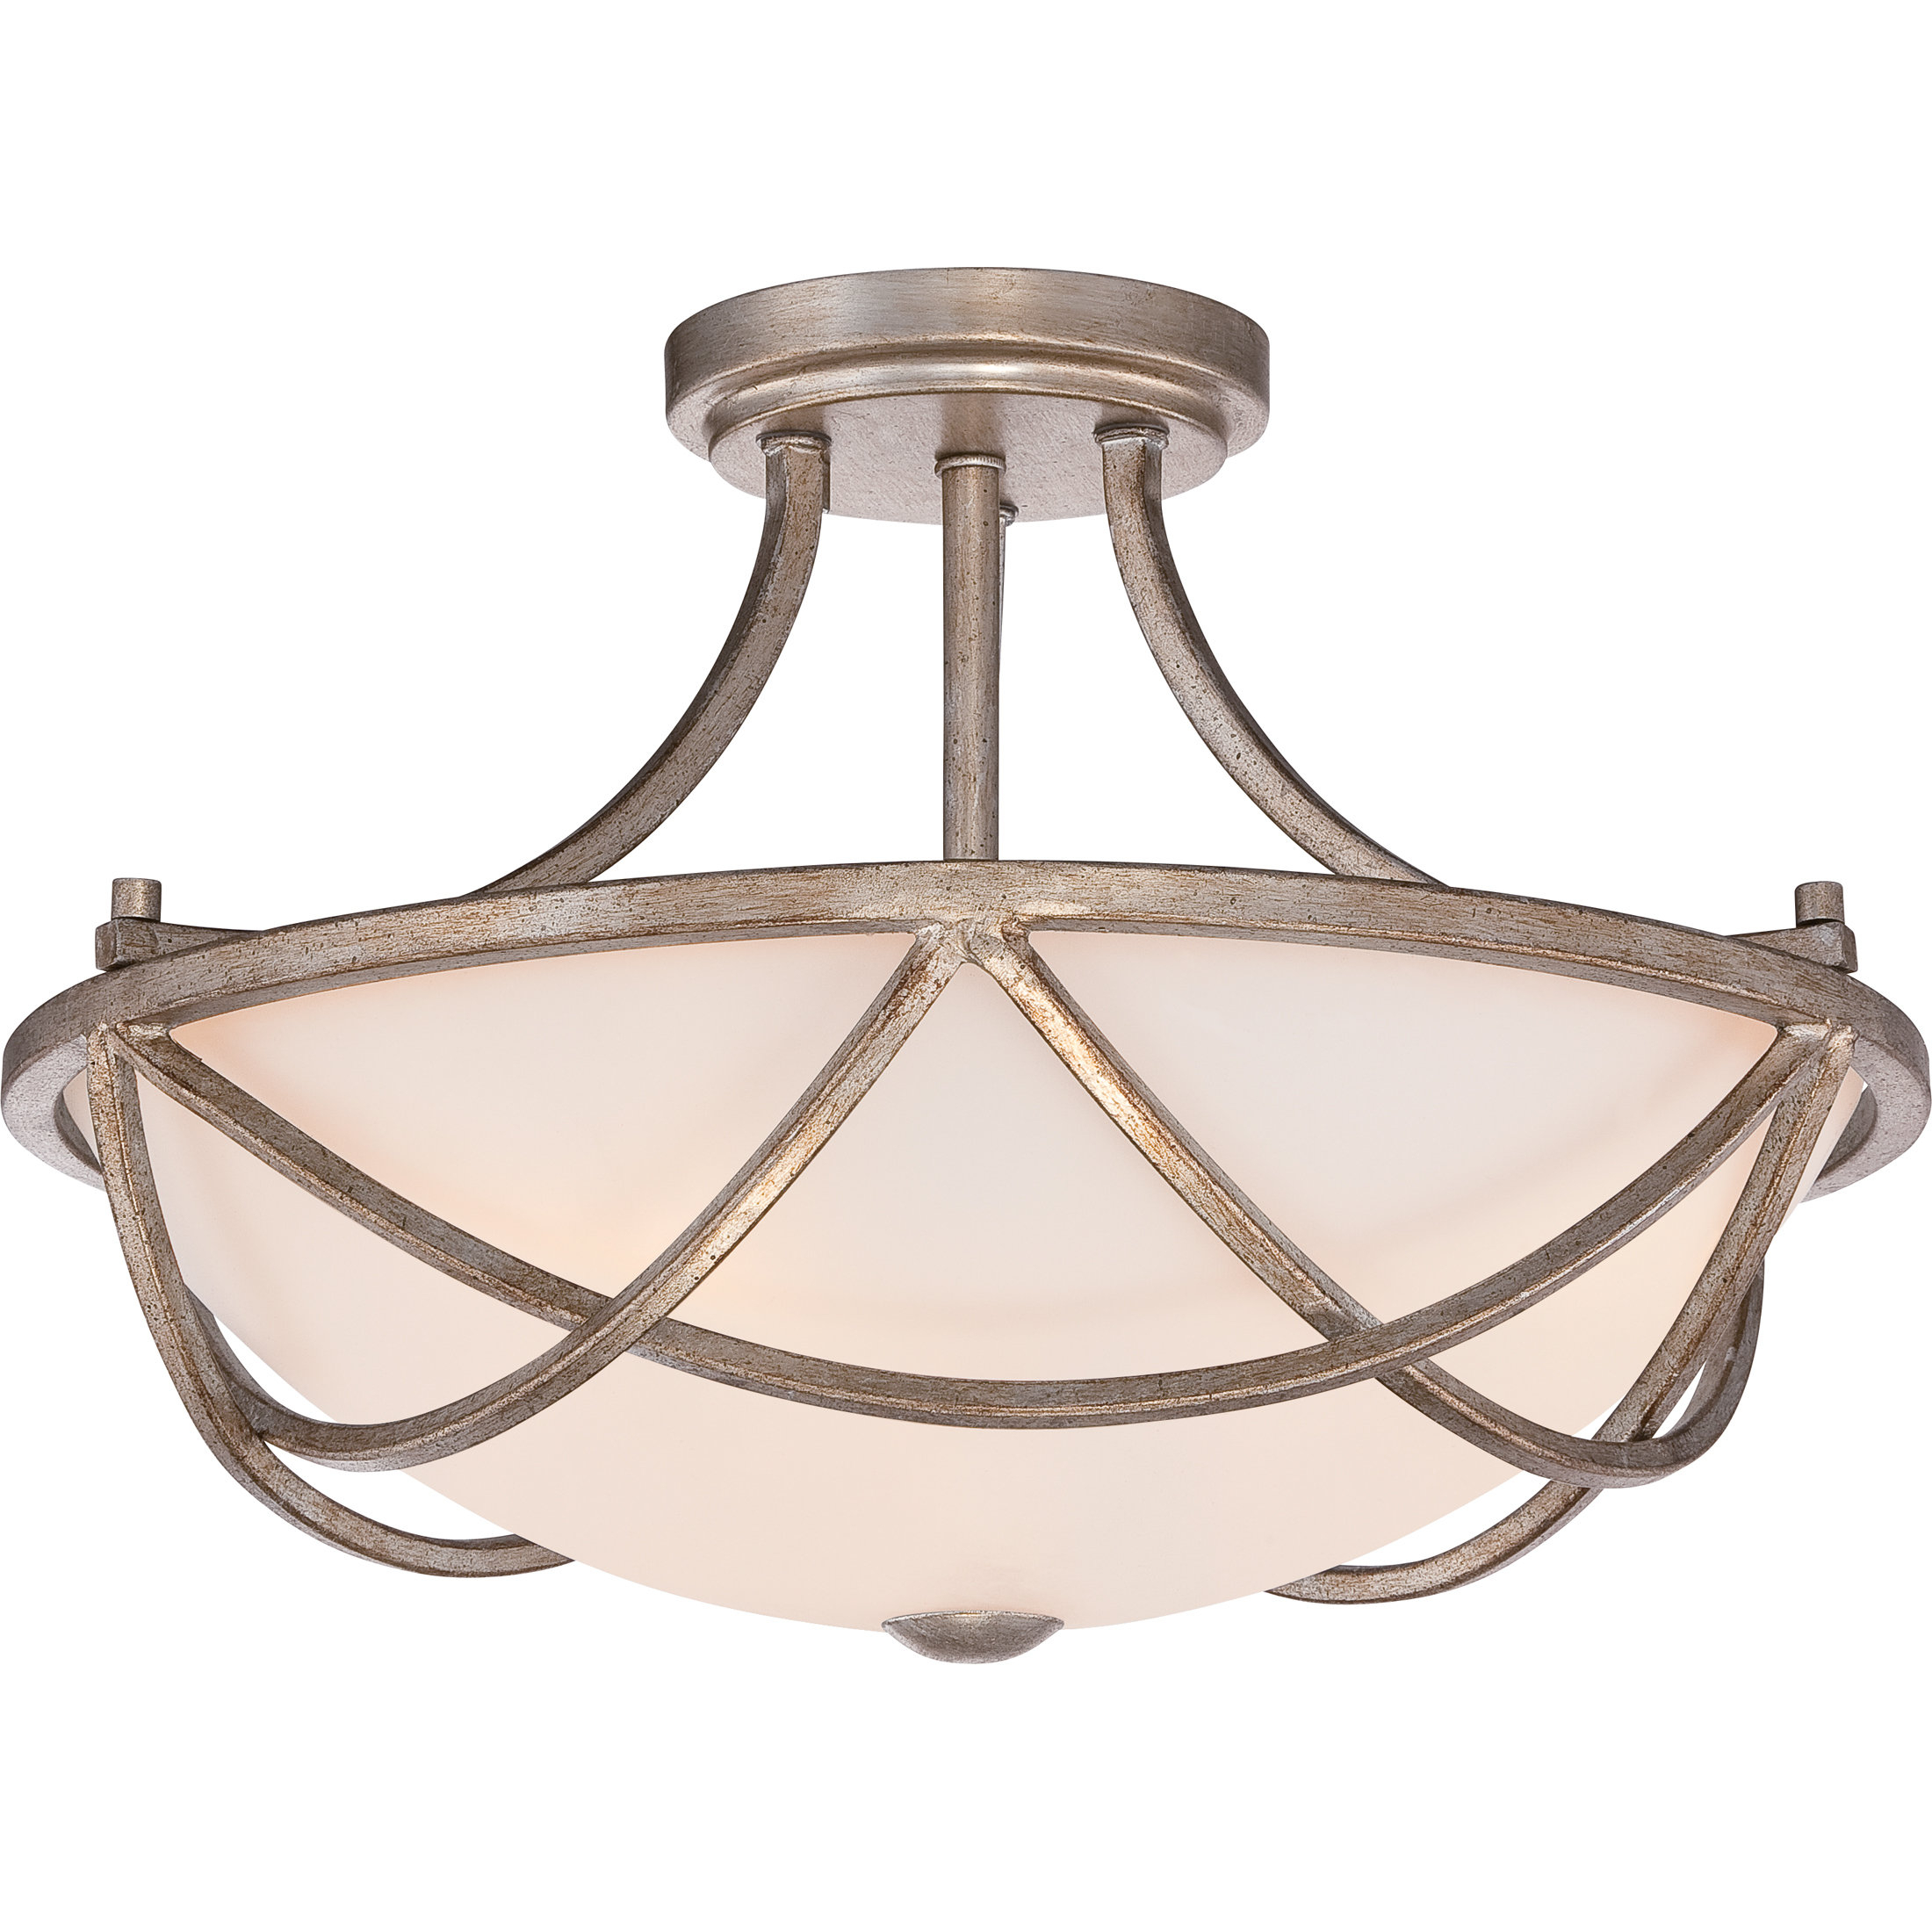 Widely Used Newent 3 Light Single Bowl Pendants Inside Hedda 2 Light Single Bowl Pendant (View 20 of 20)